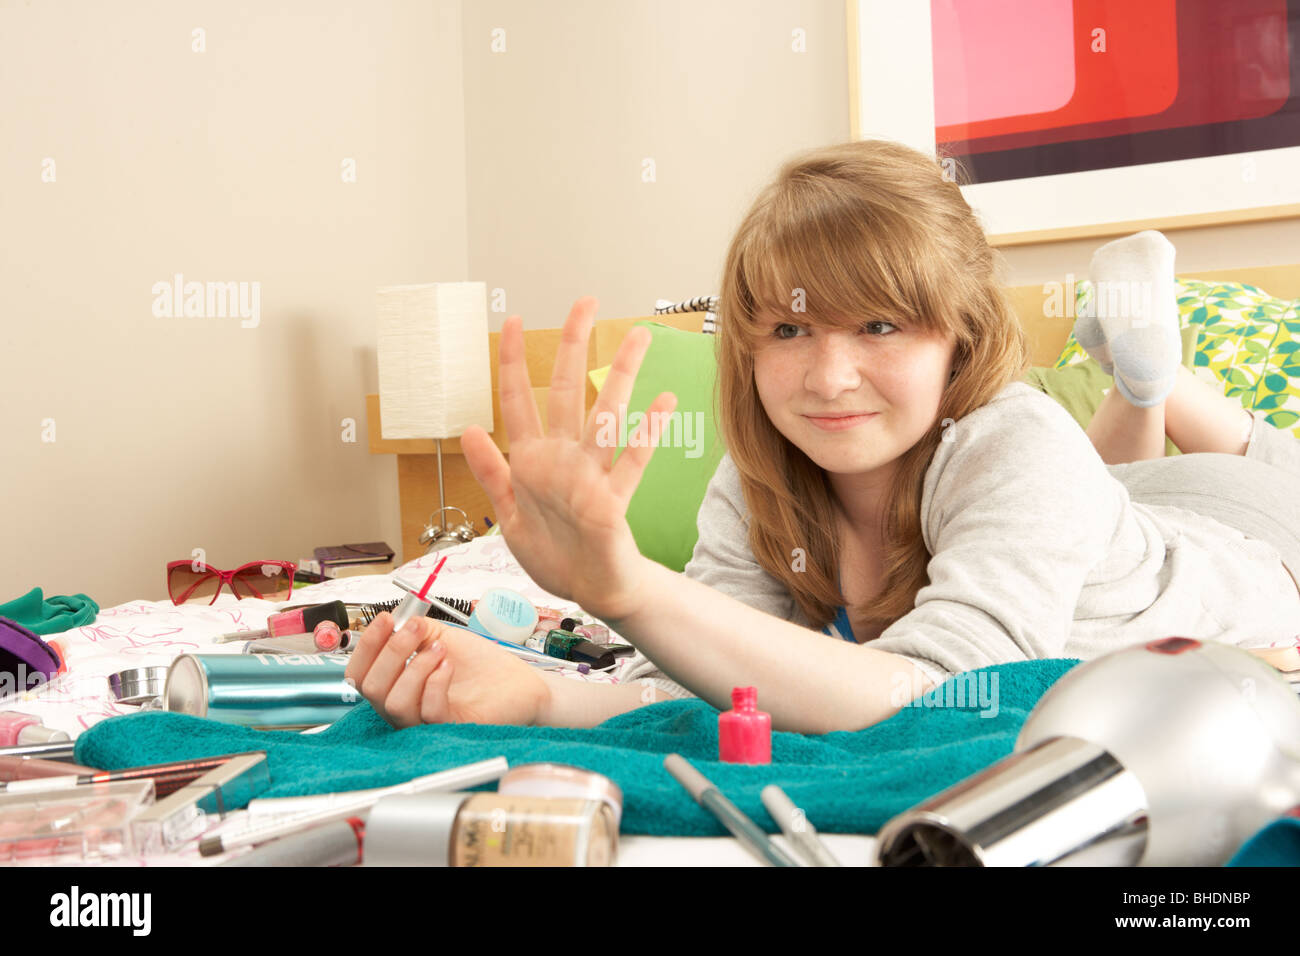 Teenage Girl In Untidy Bedroom Painting Nails - Stock Image